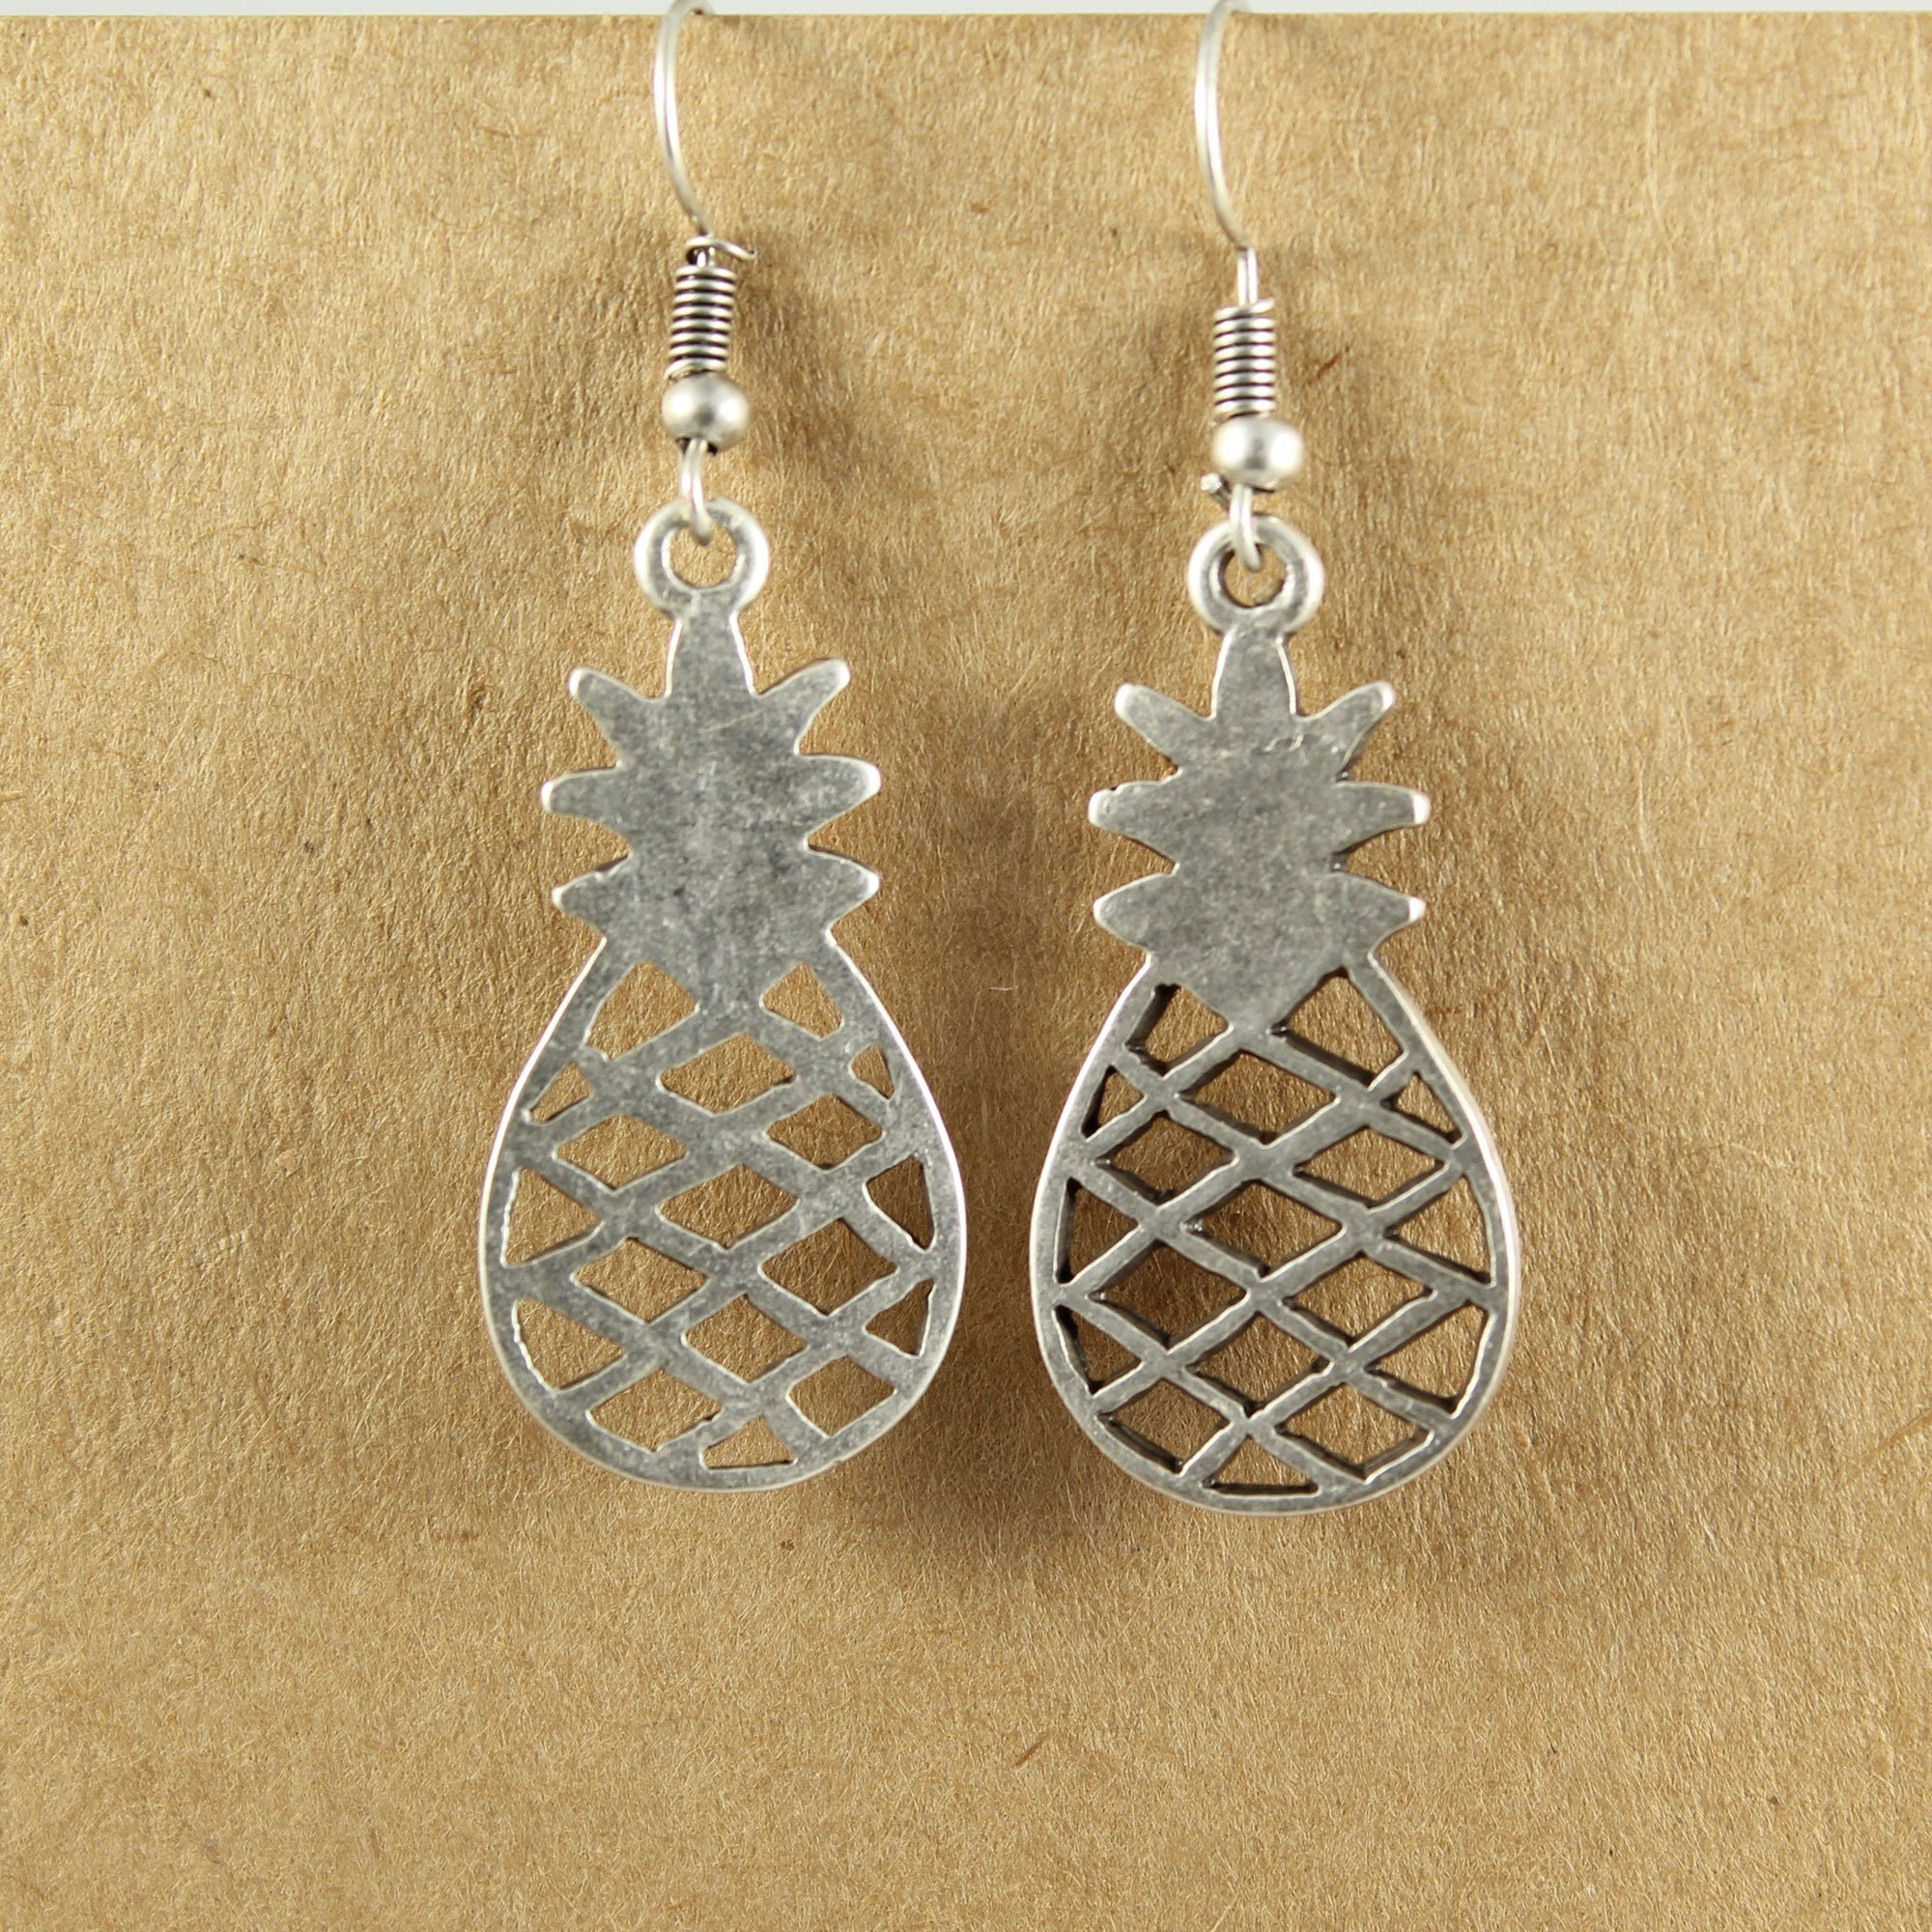 Pineapple earrings | Earrings - The Naughty Shrew